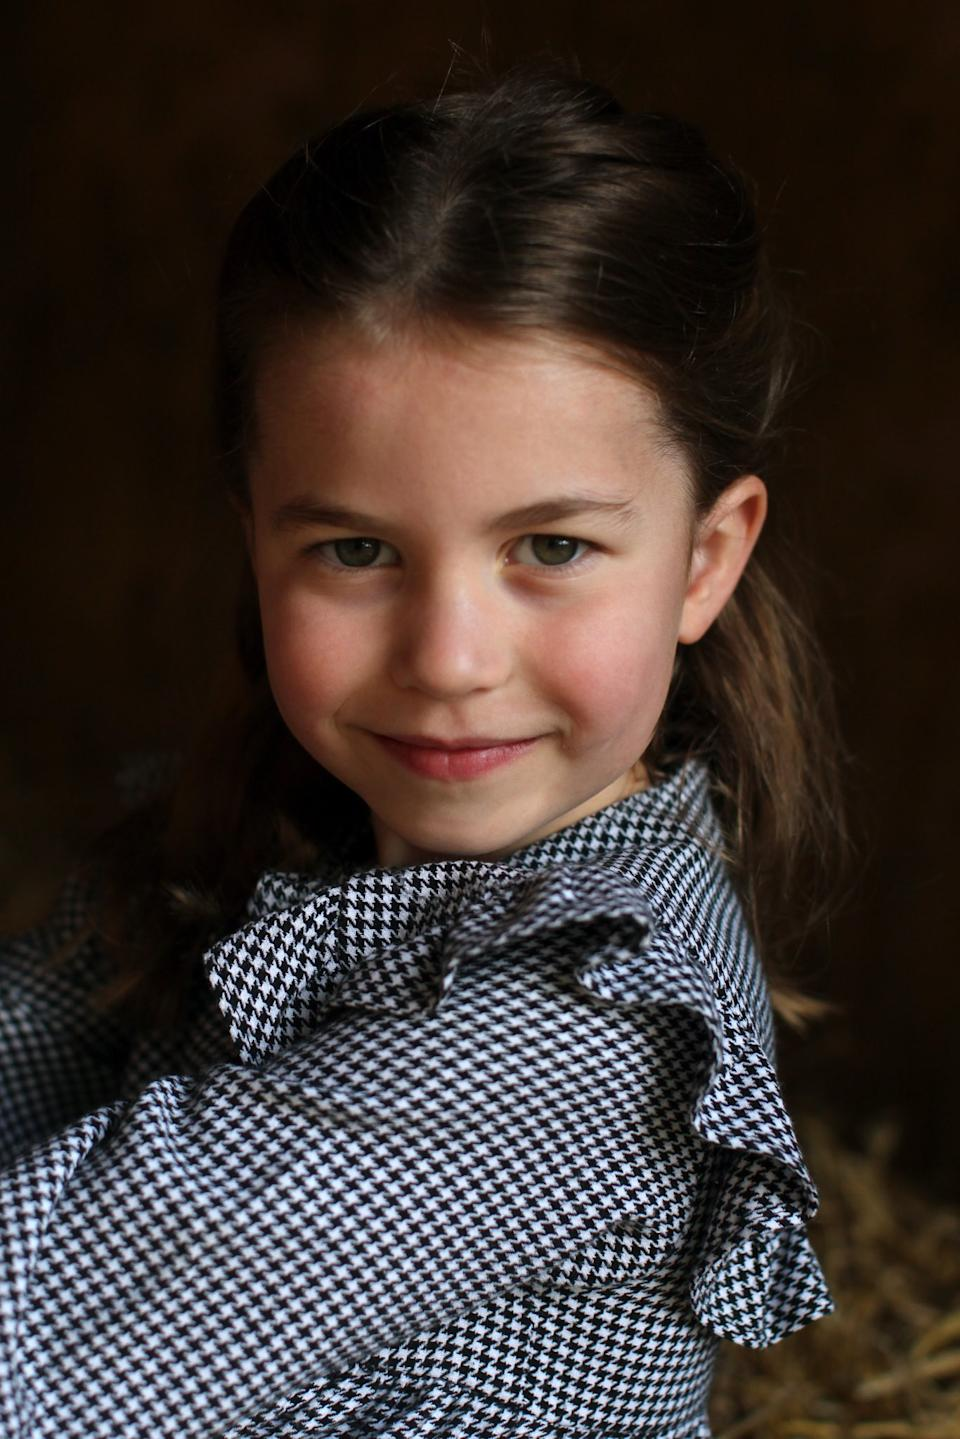 "<a href=""https://ca.search.yahoo.com/search?p=PrincessCharlotte&fr=fp-tts&fr2"" data-ylk=""slk:Princess Charlotte"" class=""link rapid-noclick-resp"">Princess Charlotte</a> was the only Cambridge tot to make the top 10 list of most popular royals of 2020. Despite being homeschooled for a majority of 2020 due to COVID-19, the Duke and Duchess of Cambridge included the five-year-old princess in giving back to those in need. In May, the Cambridges released photos of Charlotte delivering homemade care packages to senior members of their community in quarantine. (Image via Kensington Royal/Photo by Catherine, Duchess of Cambridge)."